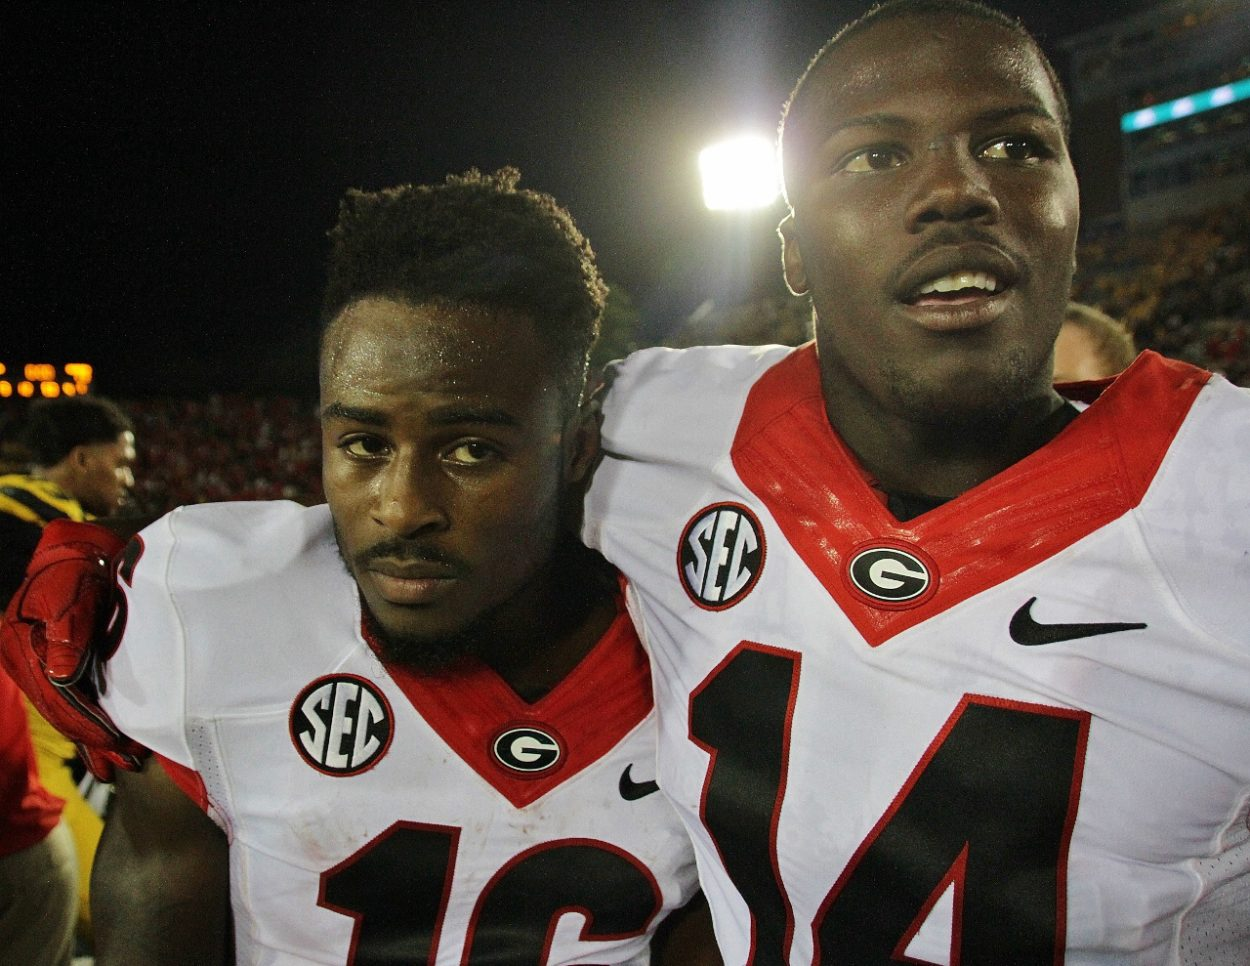 Isaiah McKenzie and Malkom Parrish celebrate the win (photo by Rob Saye)